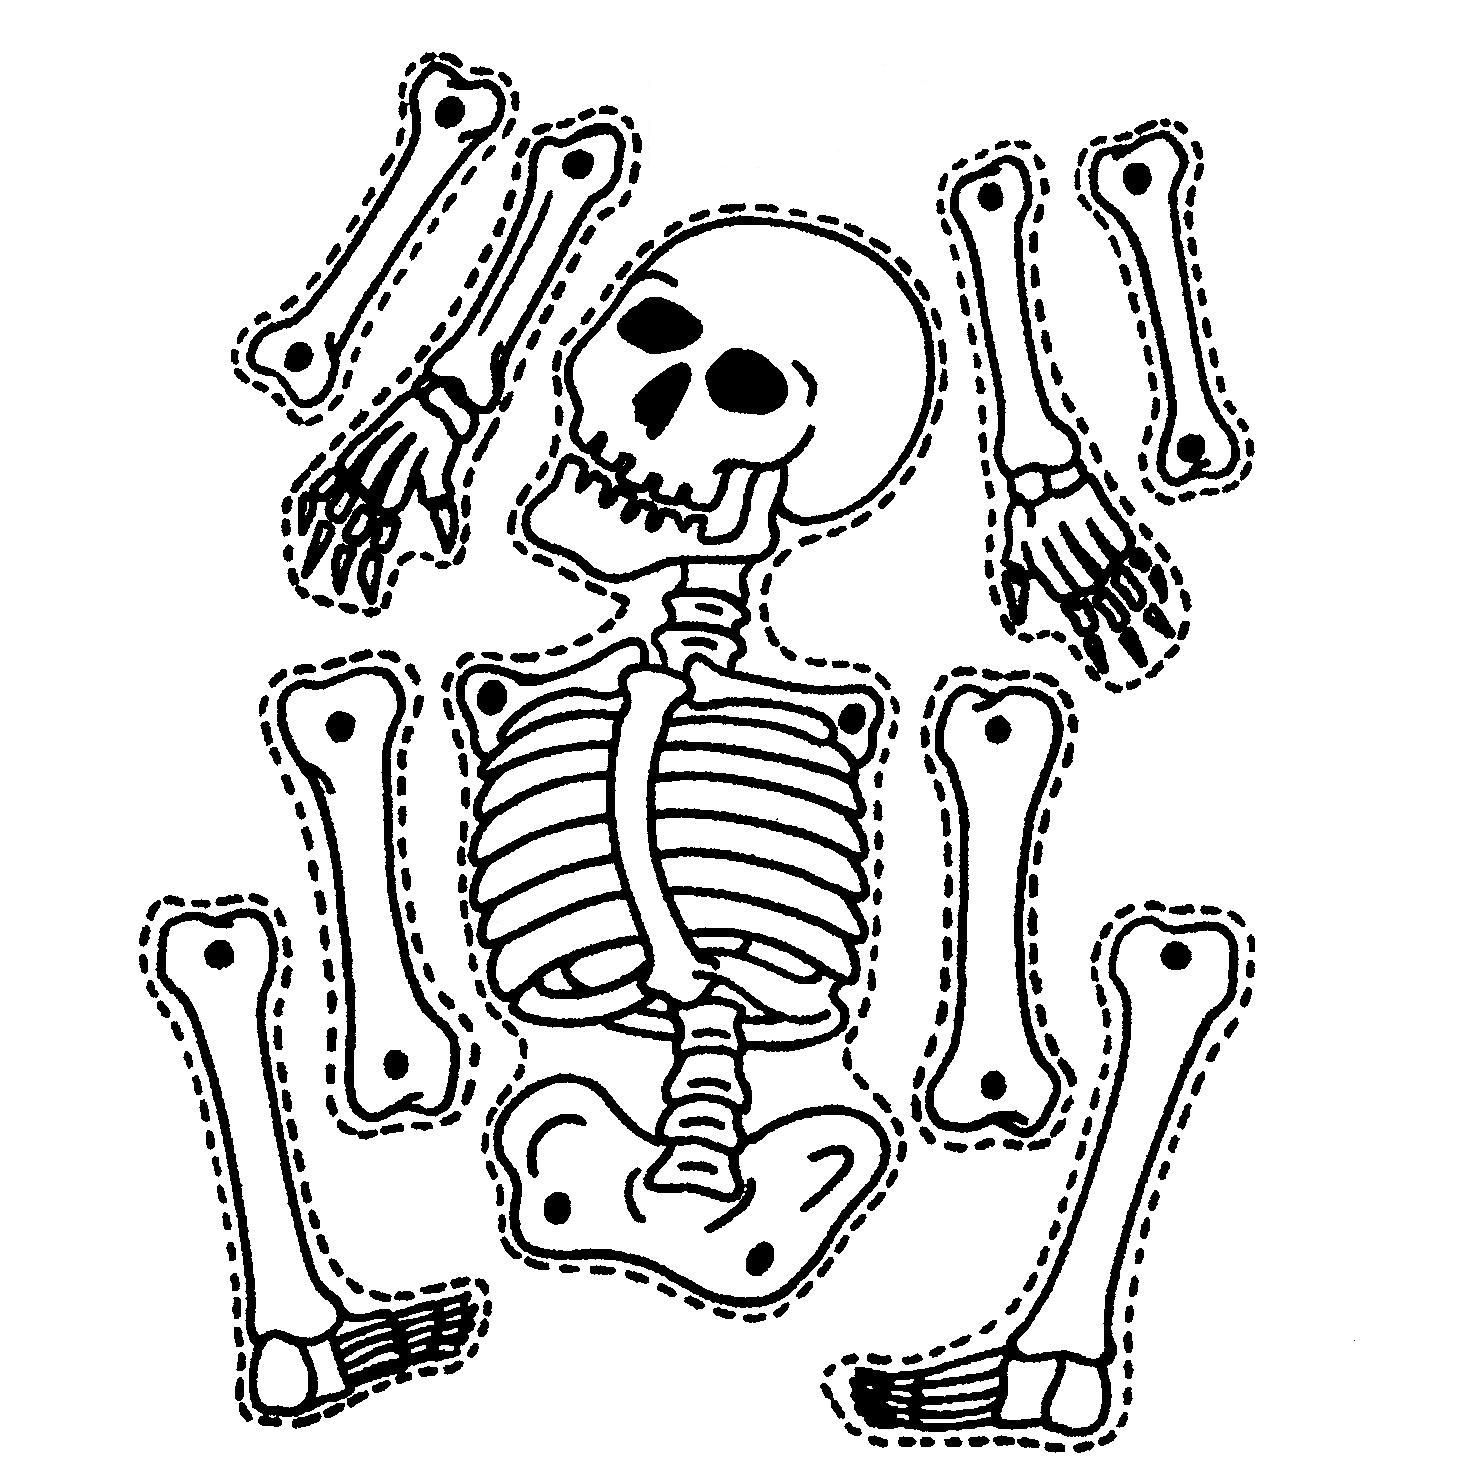 photograph relating to Skeleton Stencil Printable called 9 Printable Skeleton Crafts Math Halloween prints